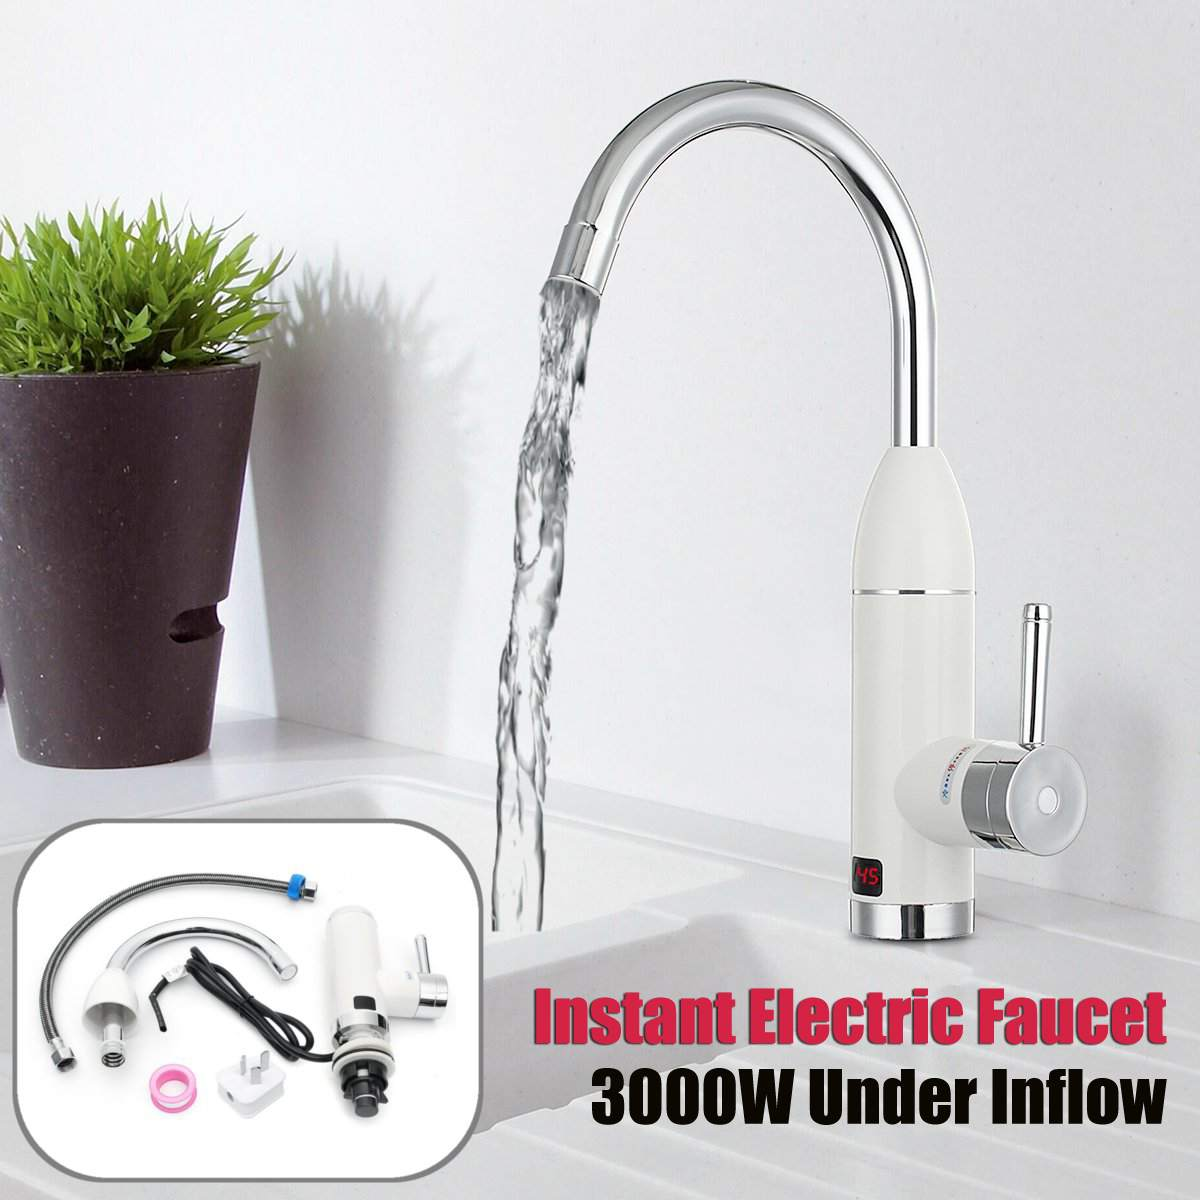 Home 3000W 220V Instant Electric Faucet Tap Hot Water Heater Under Inflow LED Display Bathroom Kitchen